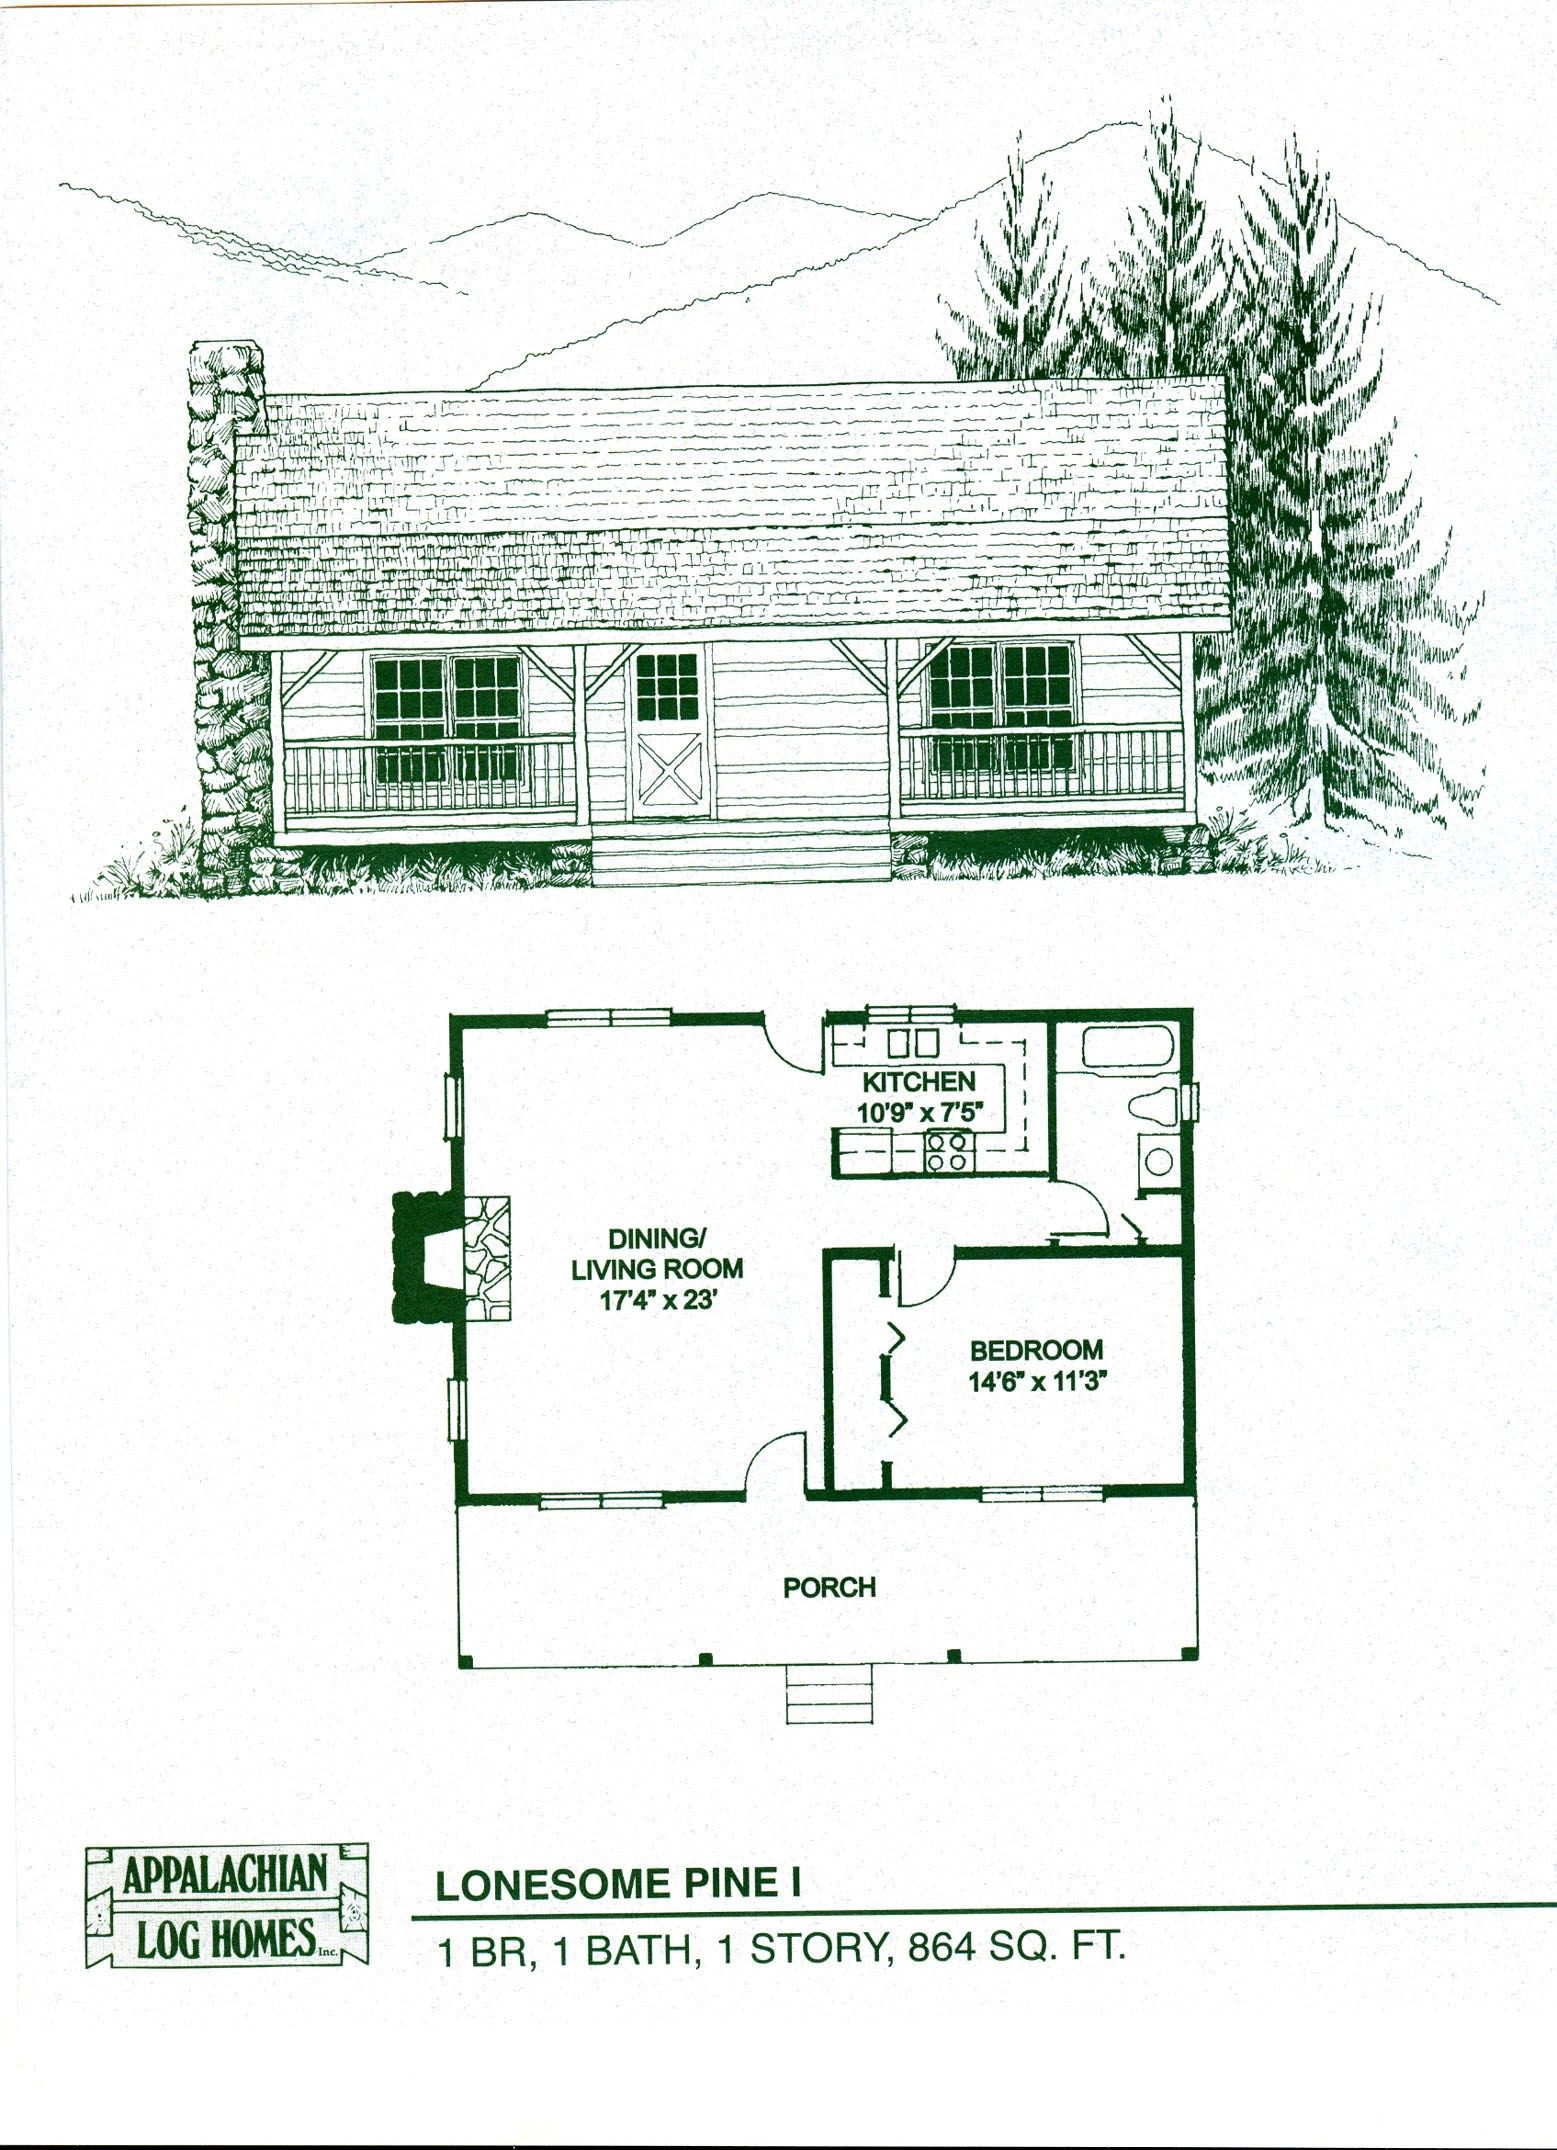 Log Cabin Floor Plans Small Home Decoration Ideas Log Cabin Cumberland Log Home Log Cabin Floor Plan Log Cabin Floor Plans Log Home Floor Plans Log Cabin Plans